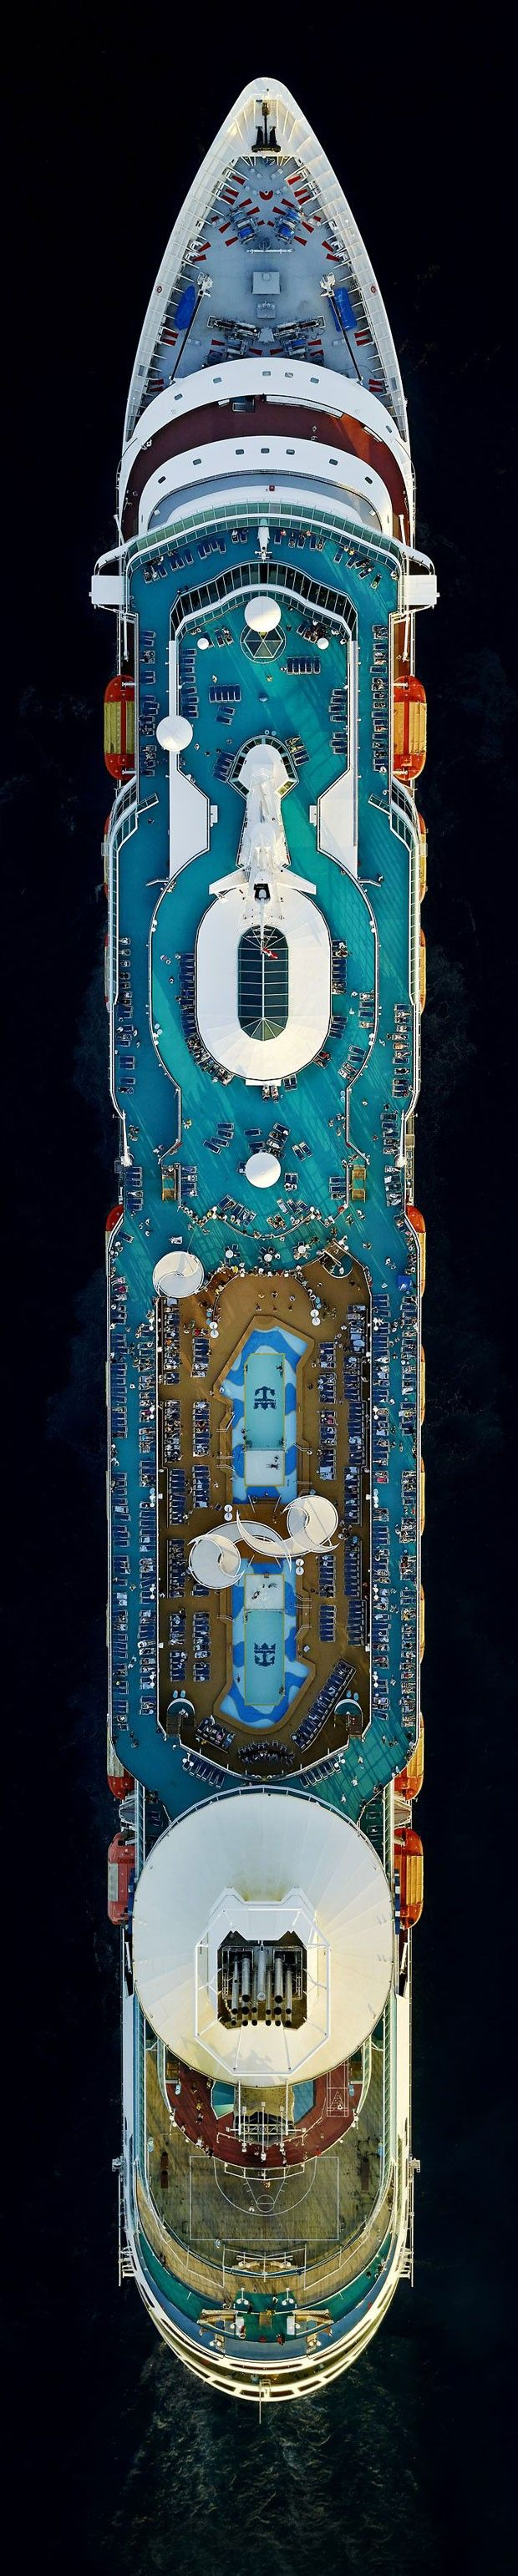 Passageiros do cruzeiro Majesty of the Seas, da Royal Caribbean, parecem formiguinhas vistas no deque ao redor das piscinas (Foto: Jeffrey Milstein/REX)